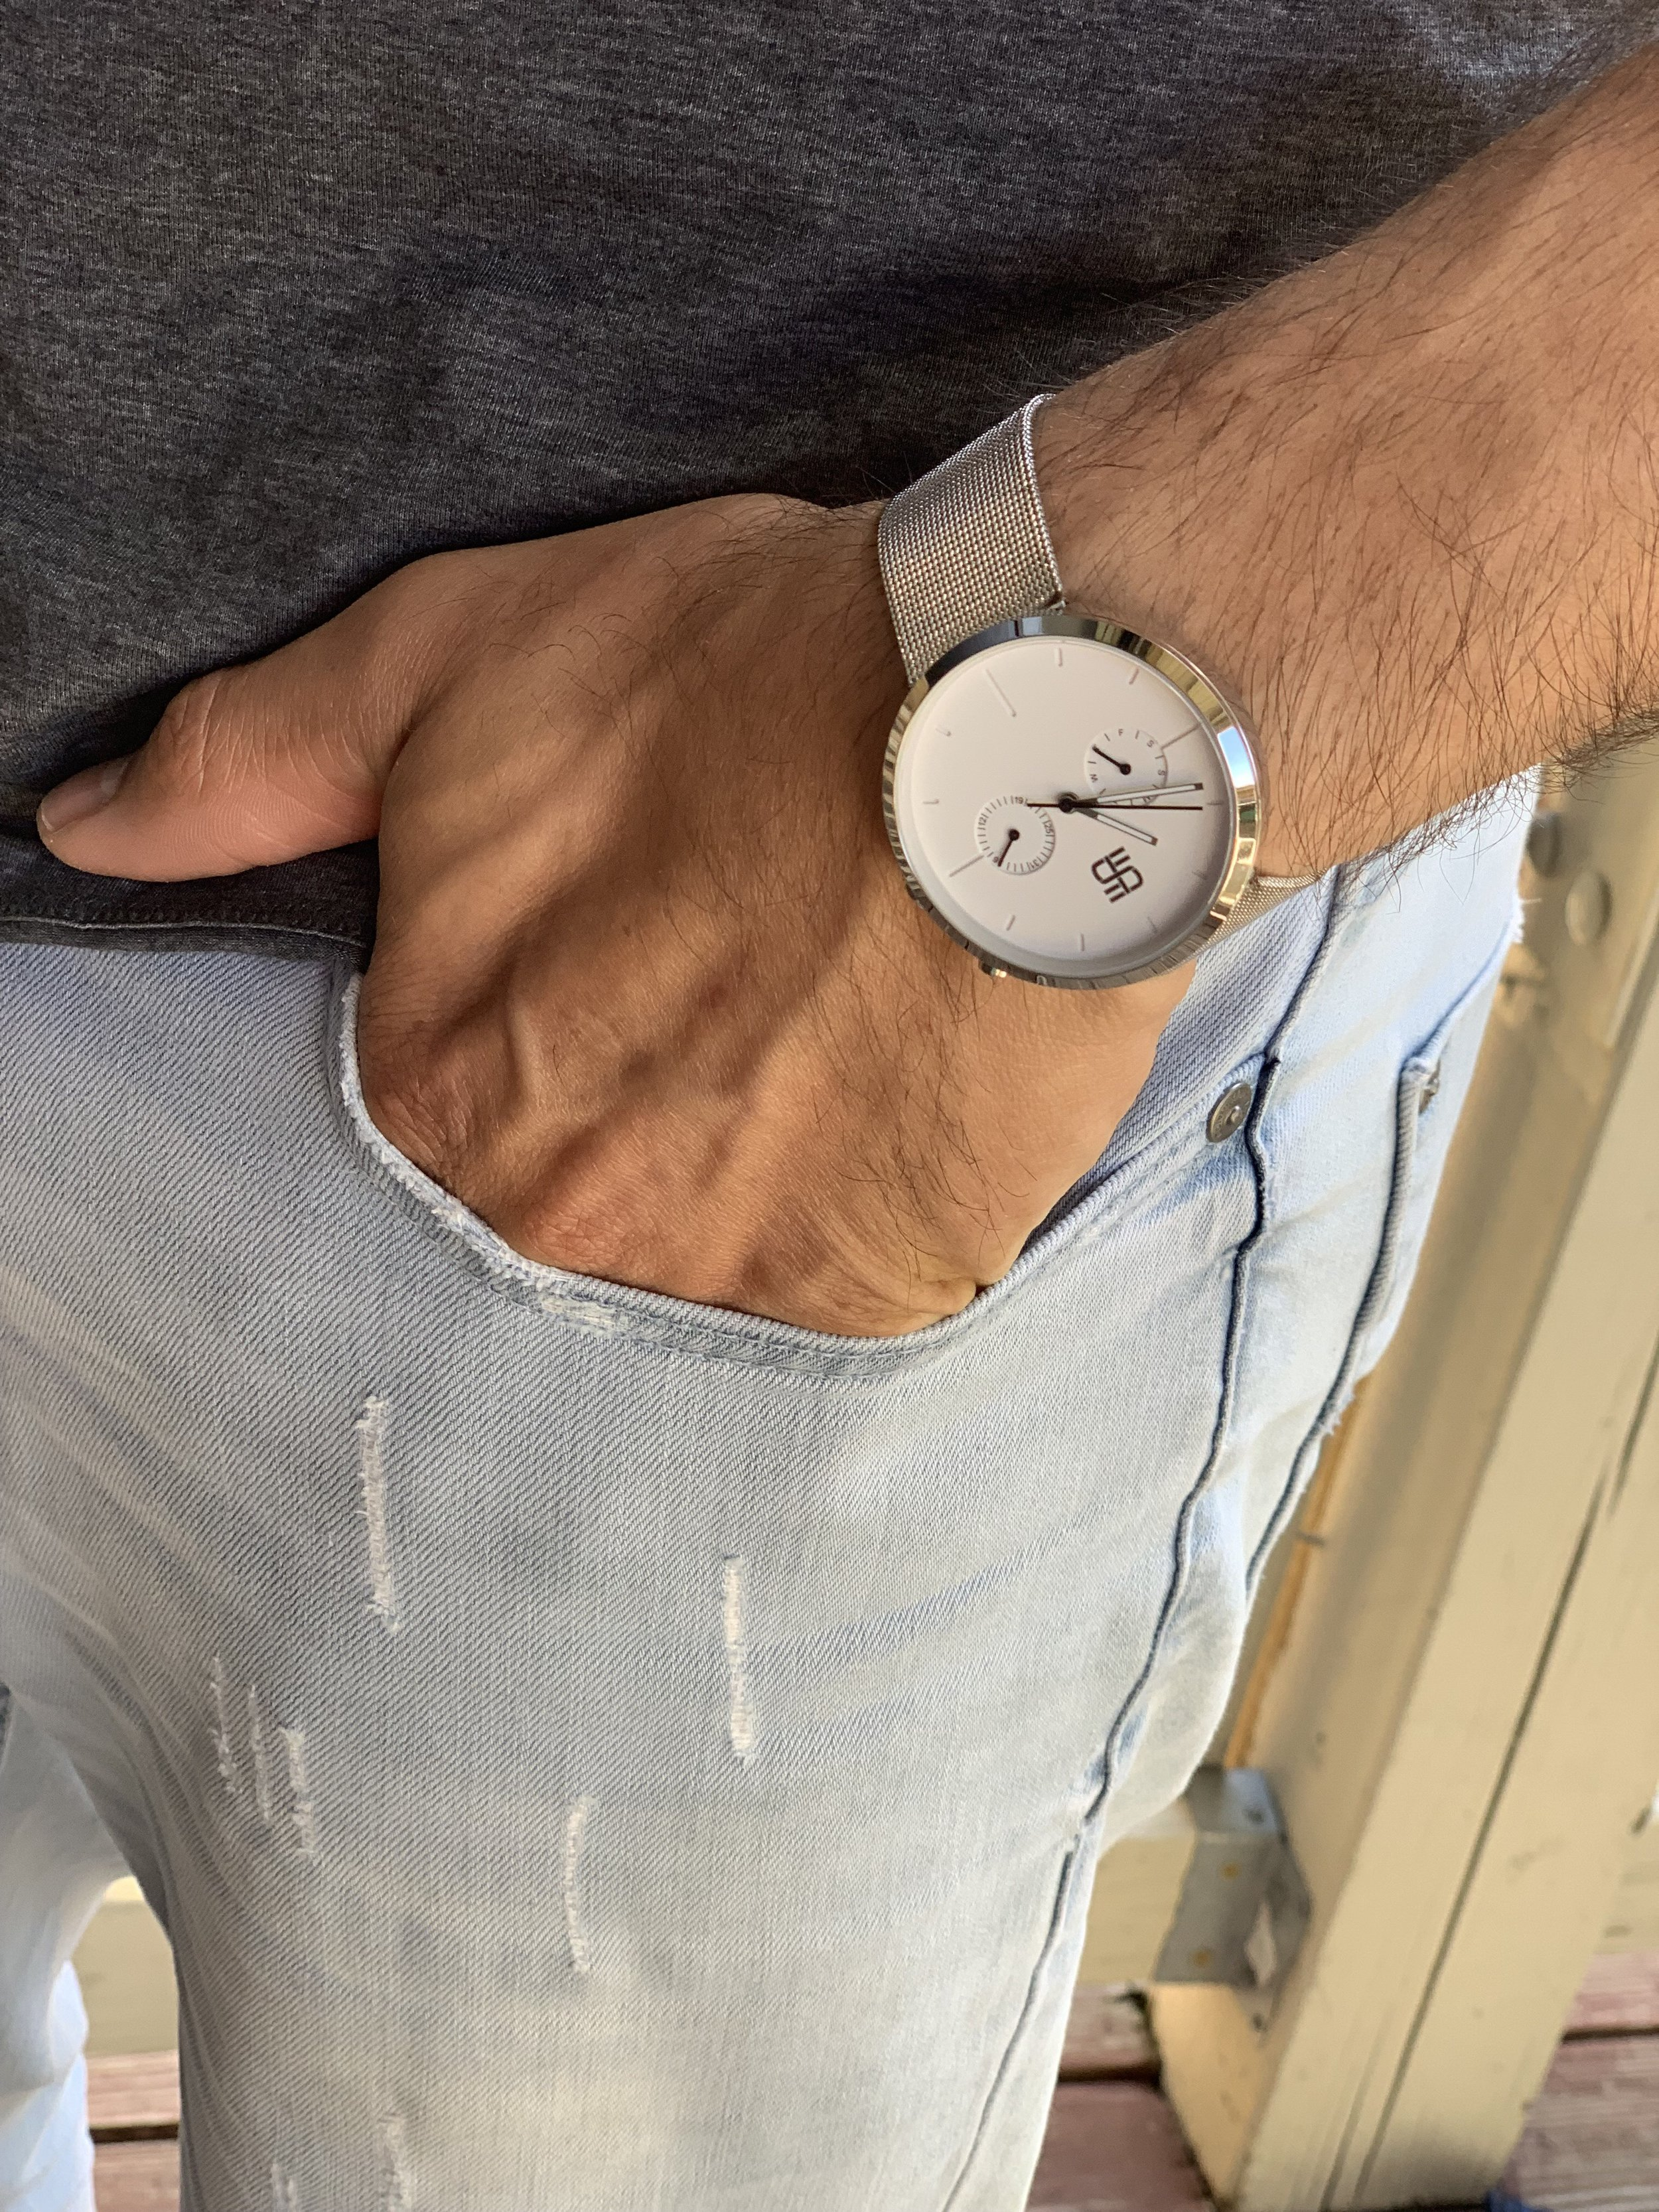 Watch by     Seities Watches